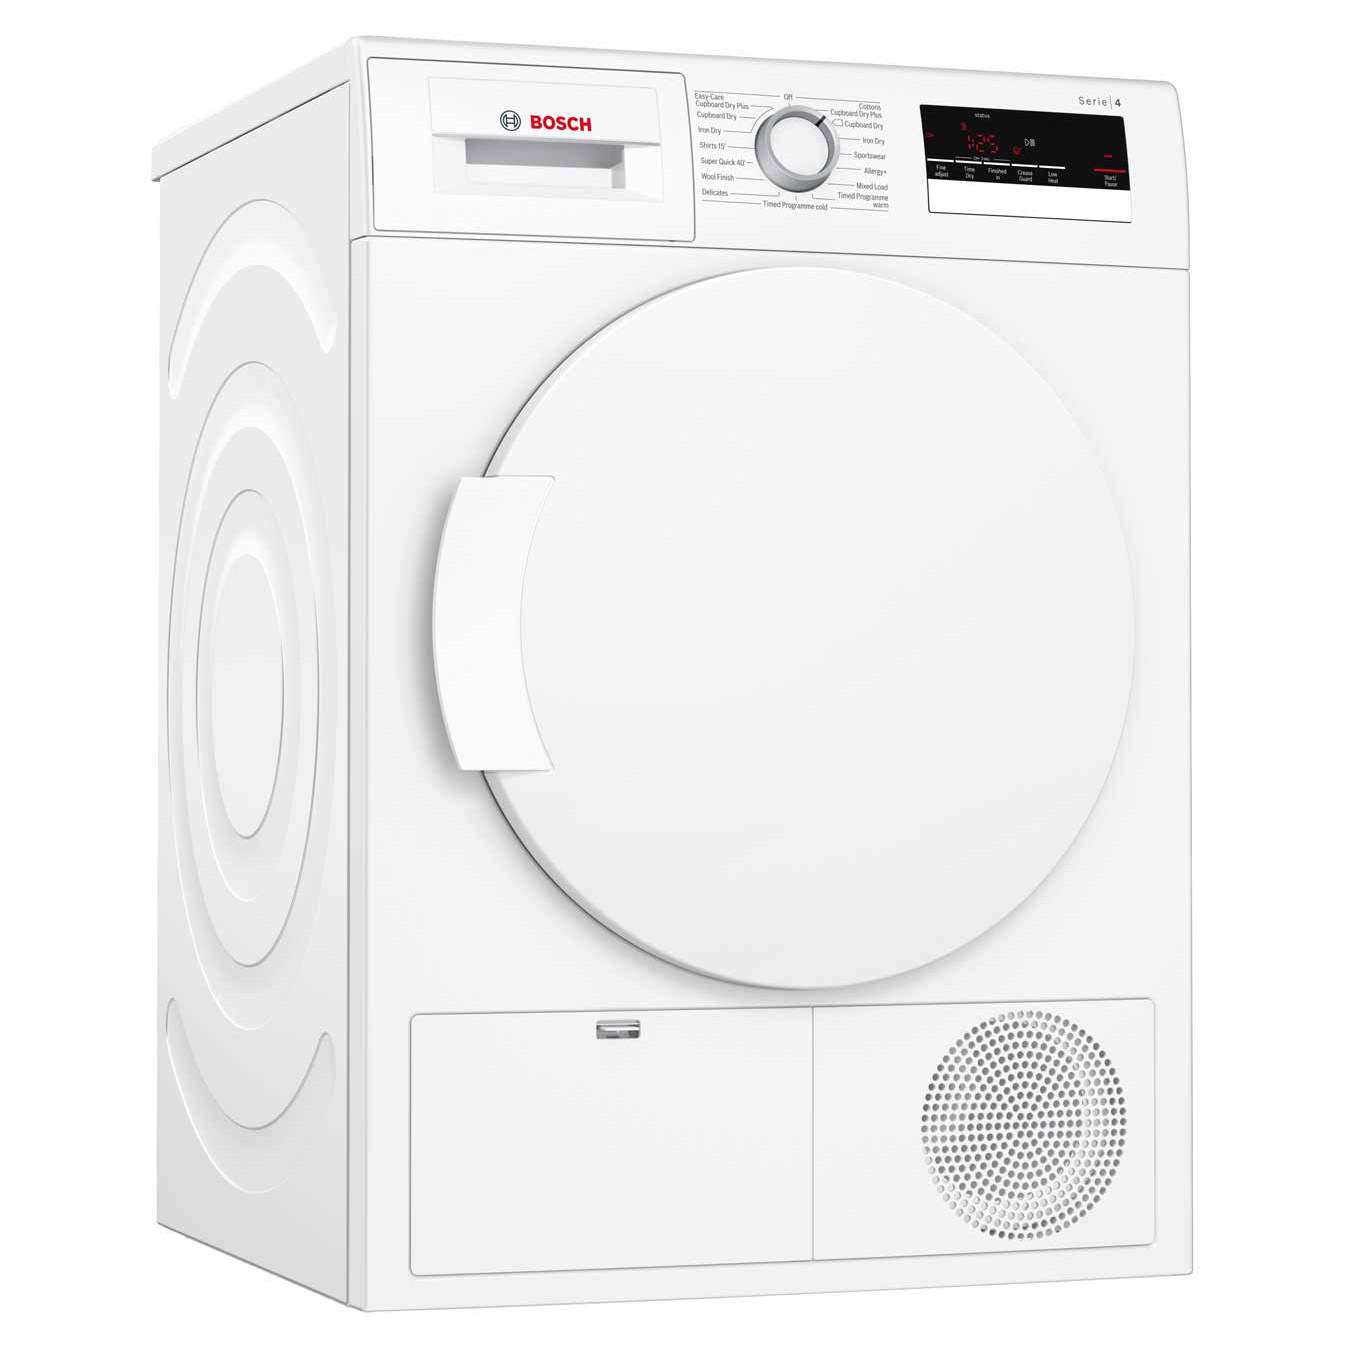 Bosch Dryer: Bosch WTN83200GB 8kg Serie-4 Condenser Dryer In White